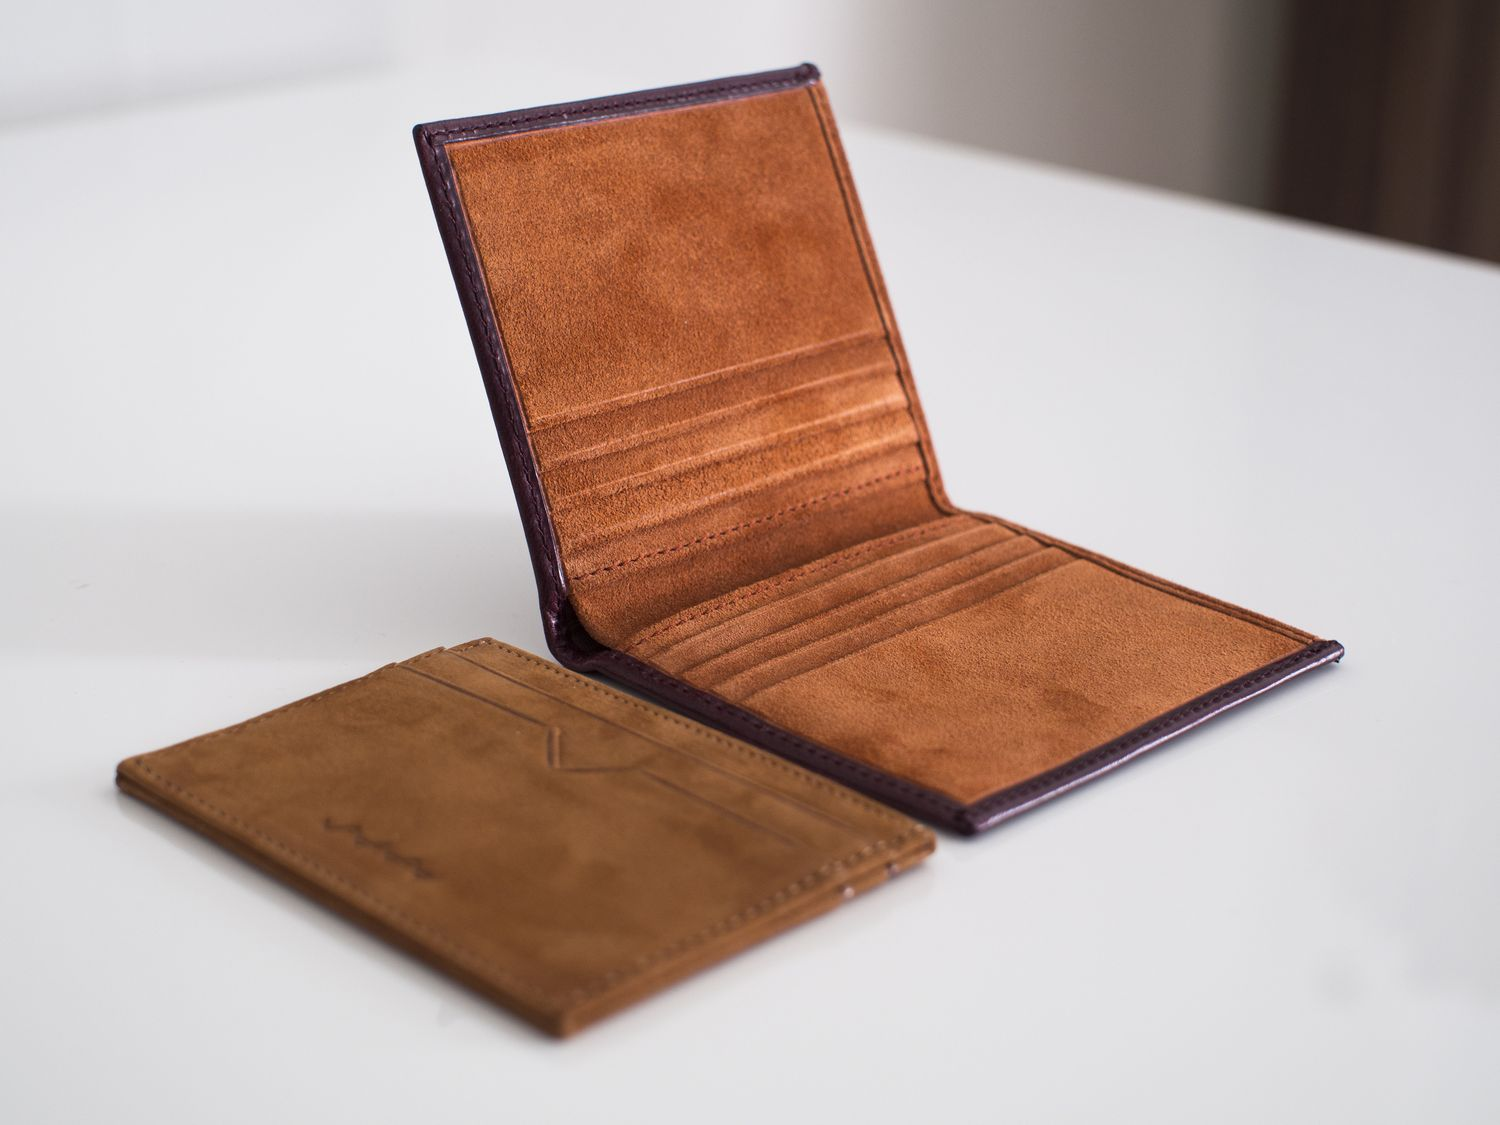 leather goods Leather • works sells handcrafted leather goods we specialize in wallets, keychains, coin purses, pouches, travel valet trays, pen sleeves and drink coasters.